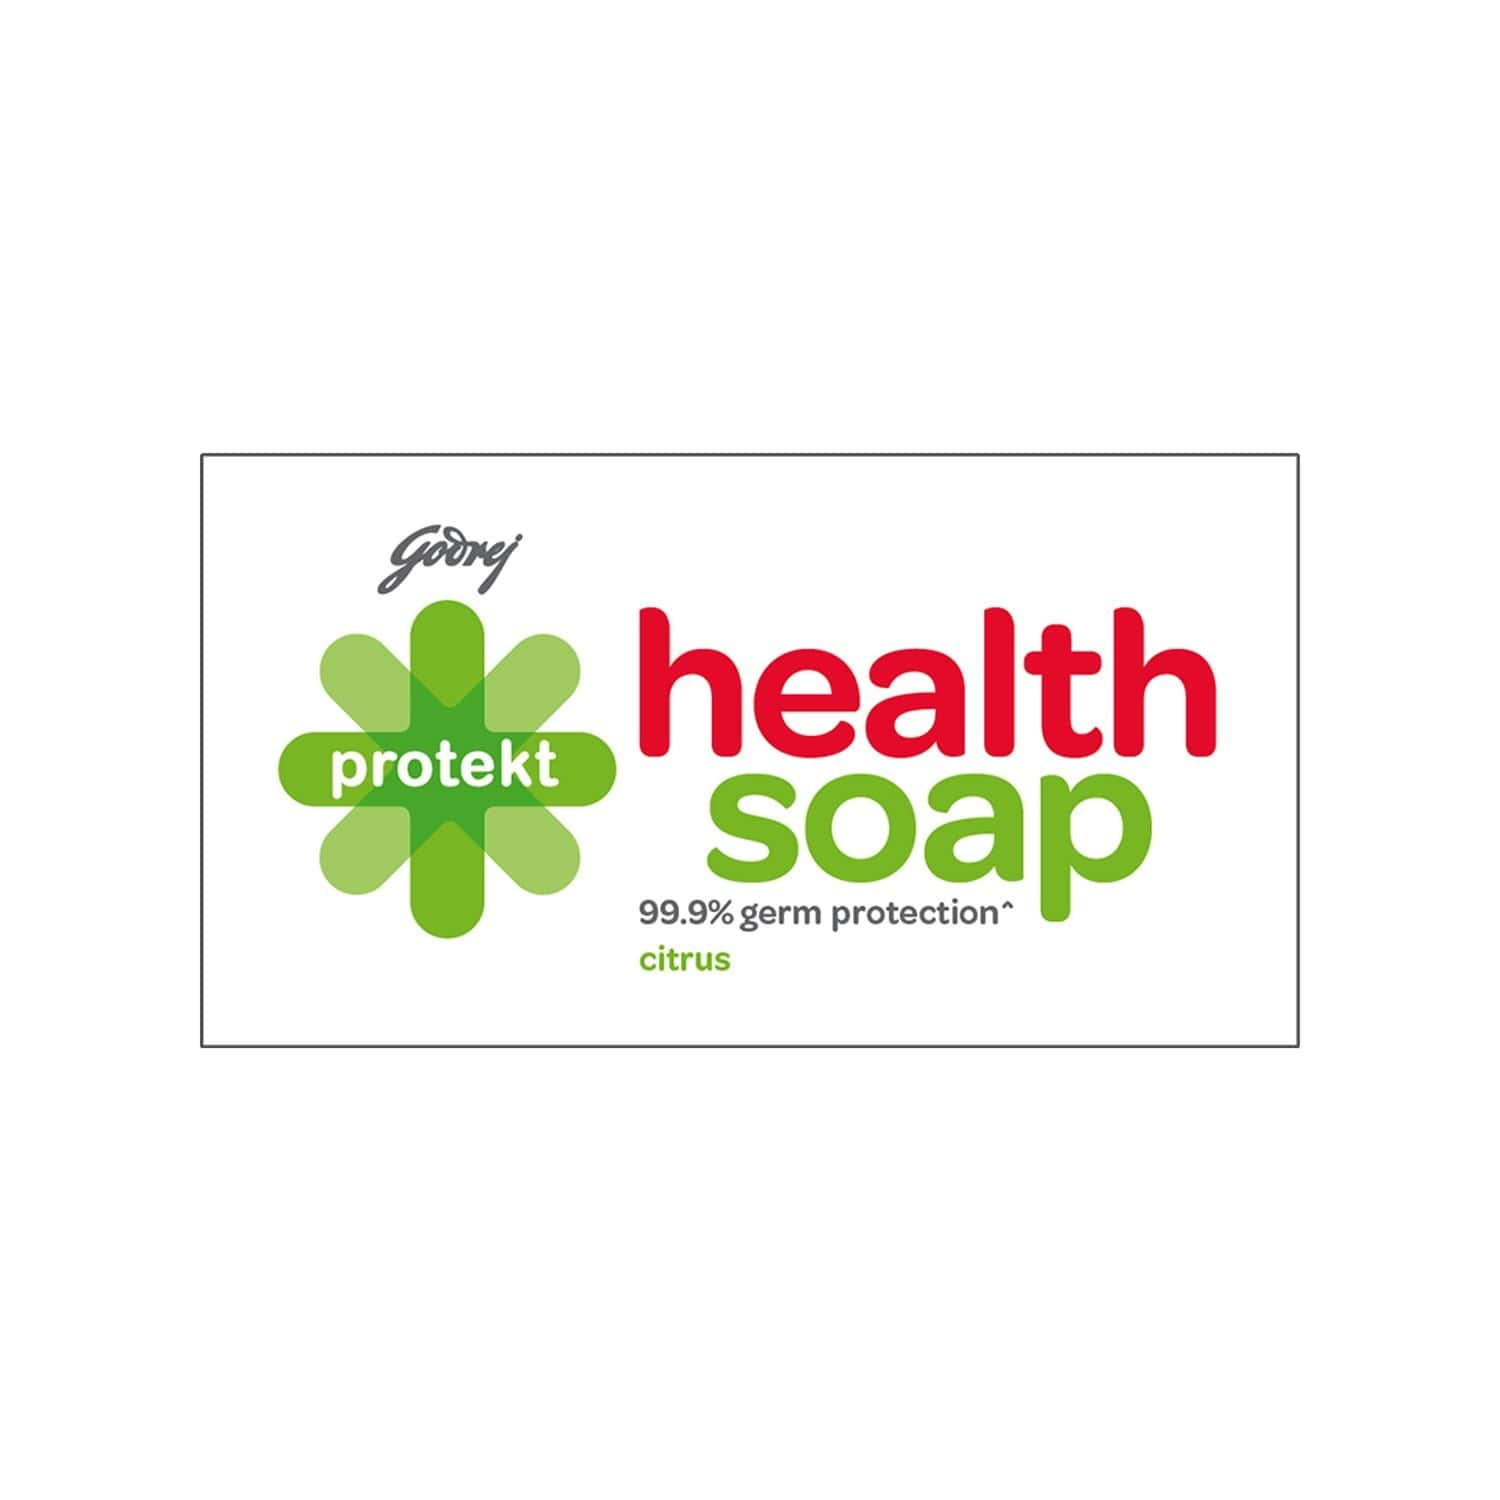 Godrej Protekt Health Bathing Soap - Citrus Fragrance - Anti-bacterial With 99.9% Germ Protection, Pack Of 8 (100g Each)